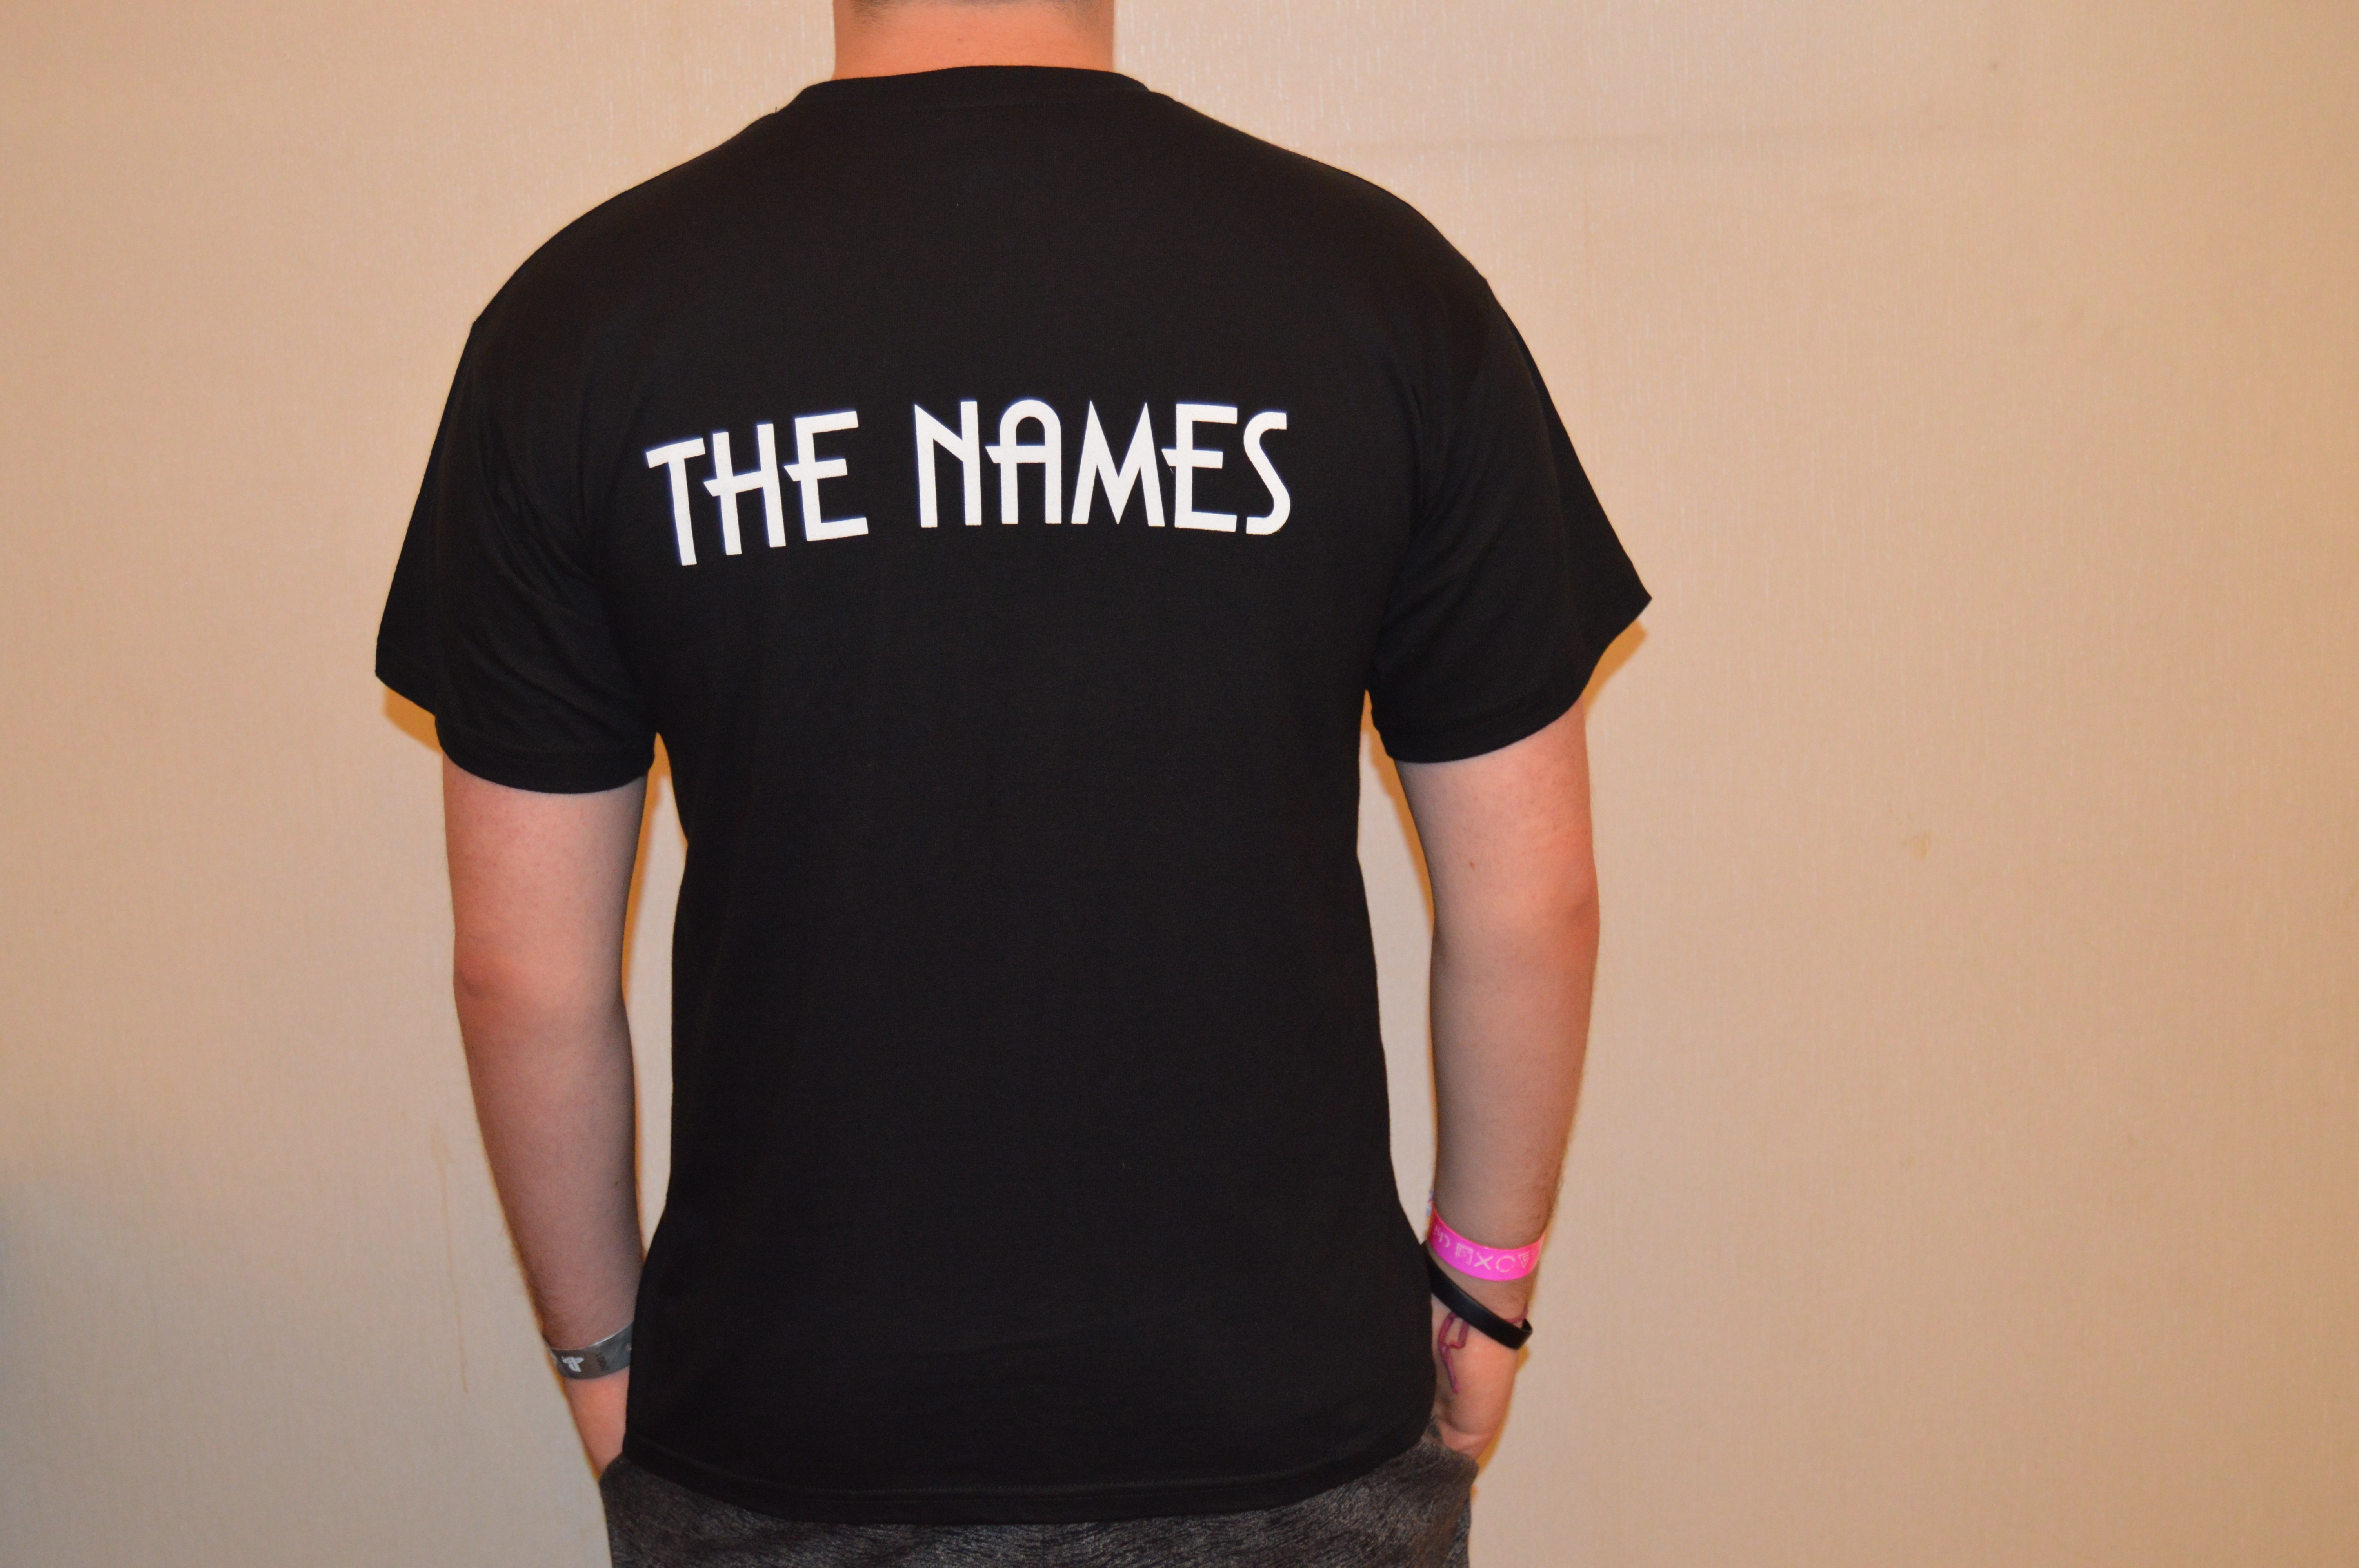 The Names - t-shirt